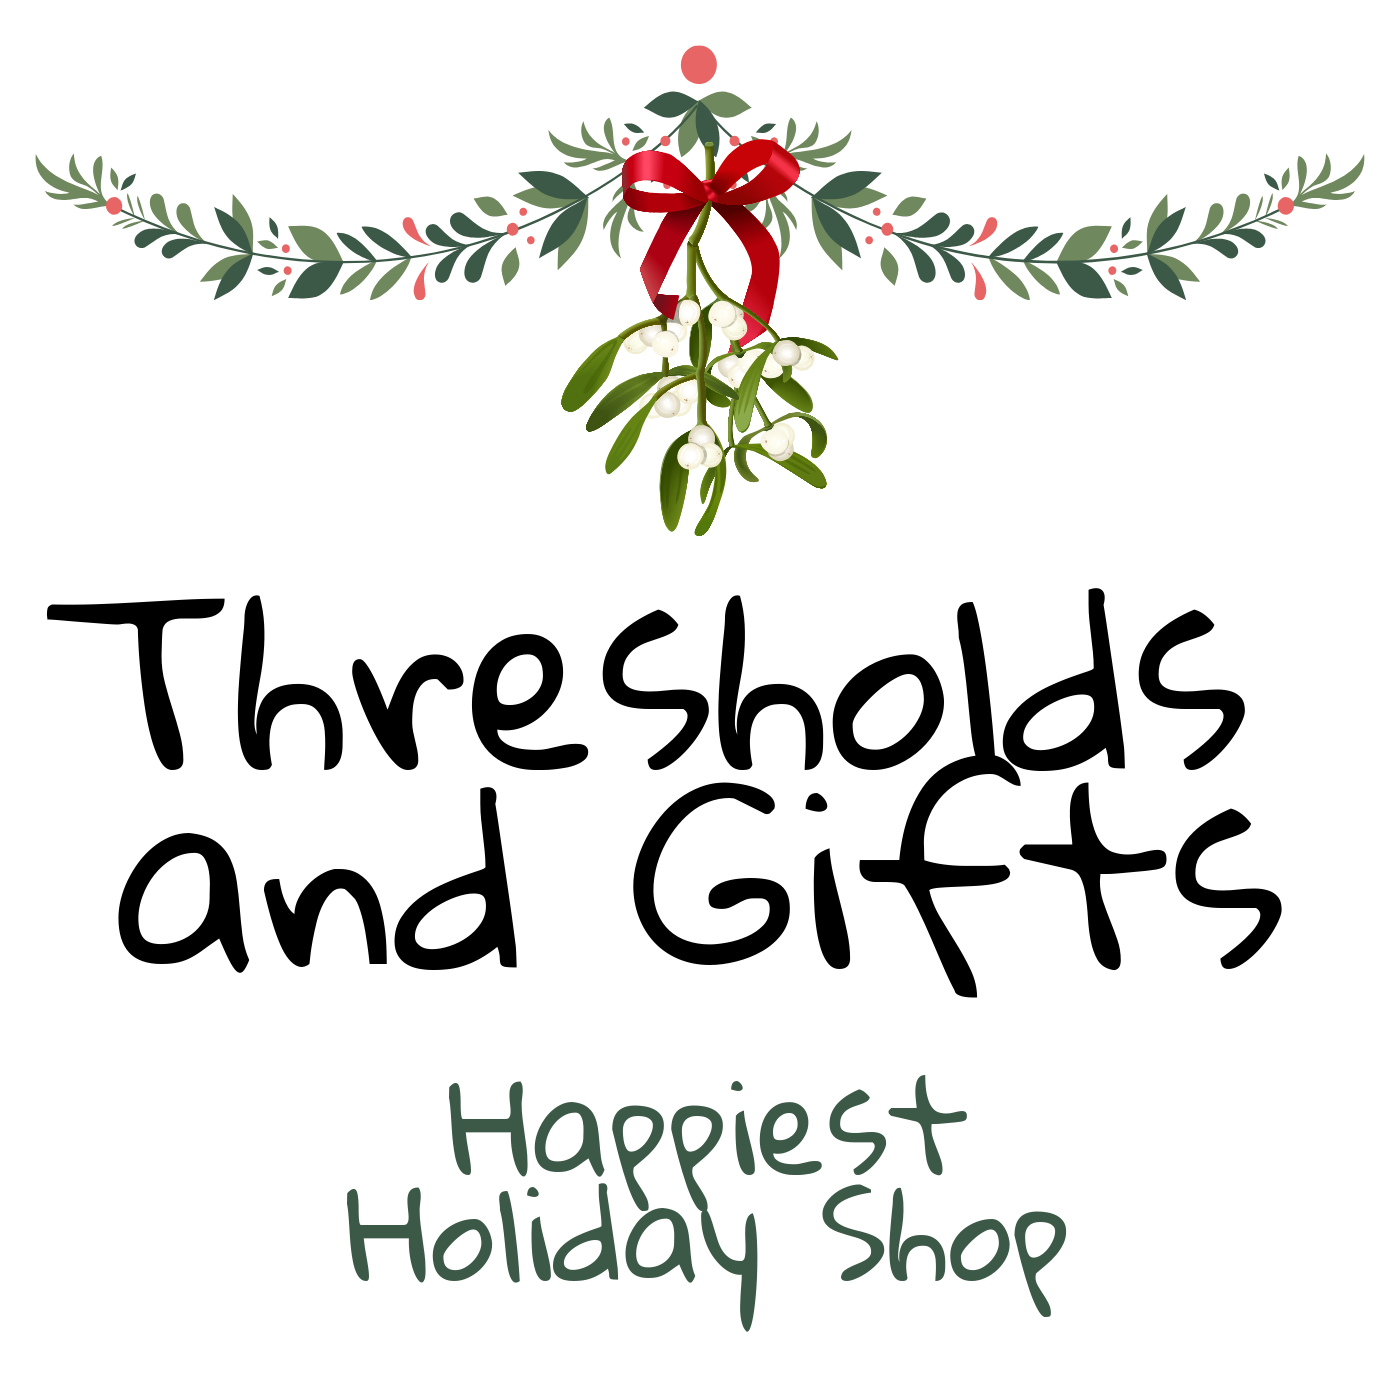 731 - Thresholds and Gifts | Happiest Holiday Shop #4